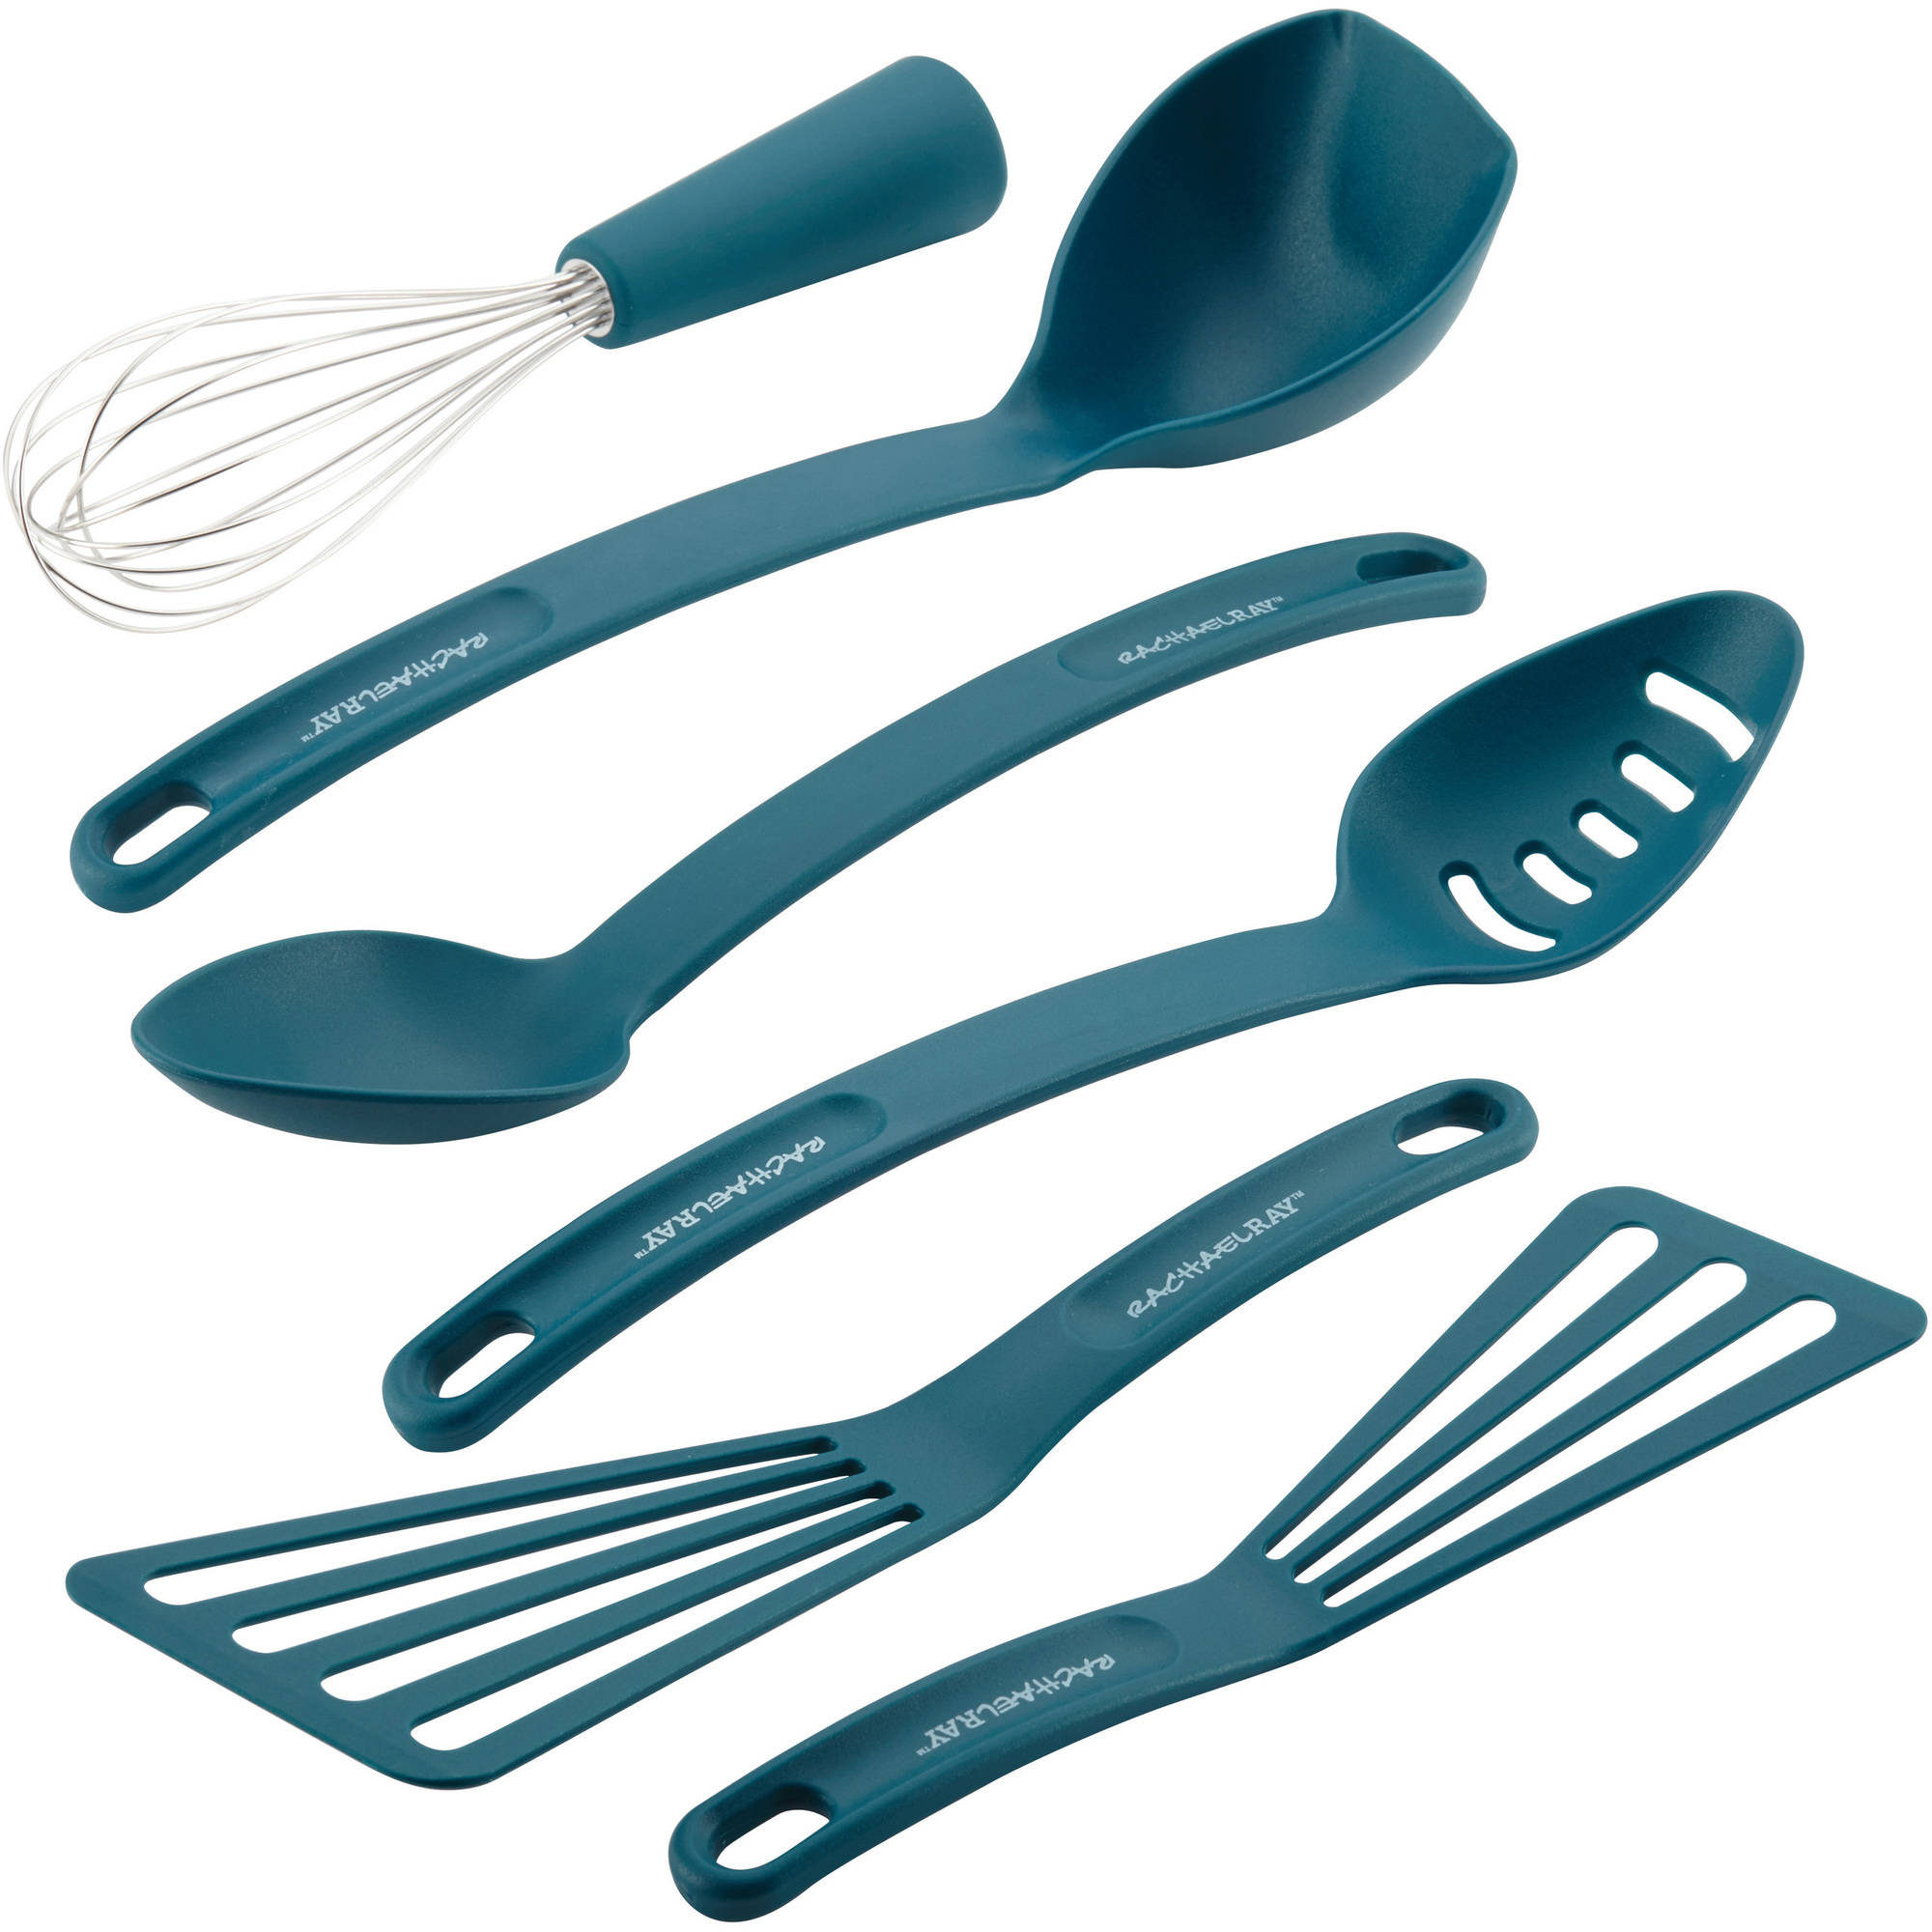 Rachael Ray Tools and Gadgets Nylon Nonstick 6-Piece Tools Set, Marine Blue